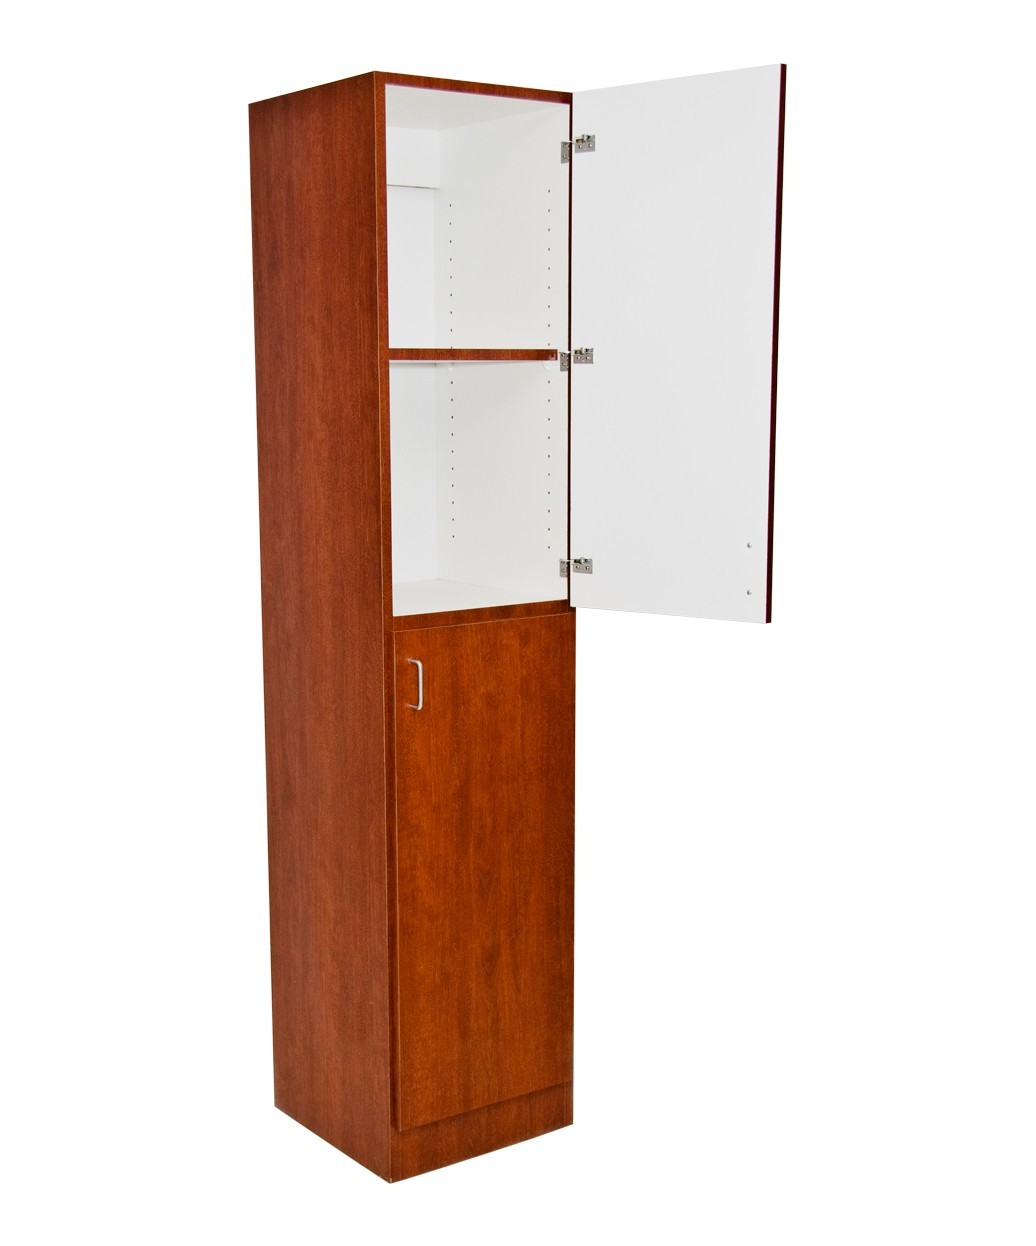 Tower Shampoo Storage Cabinet